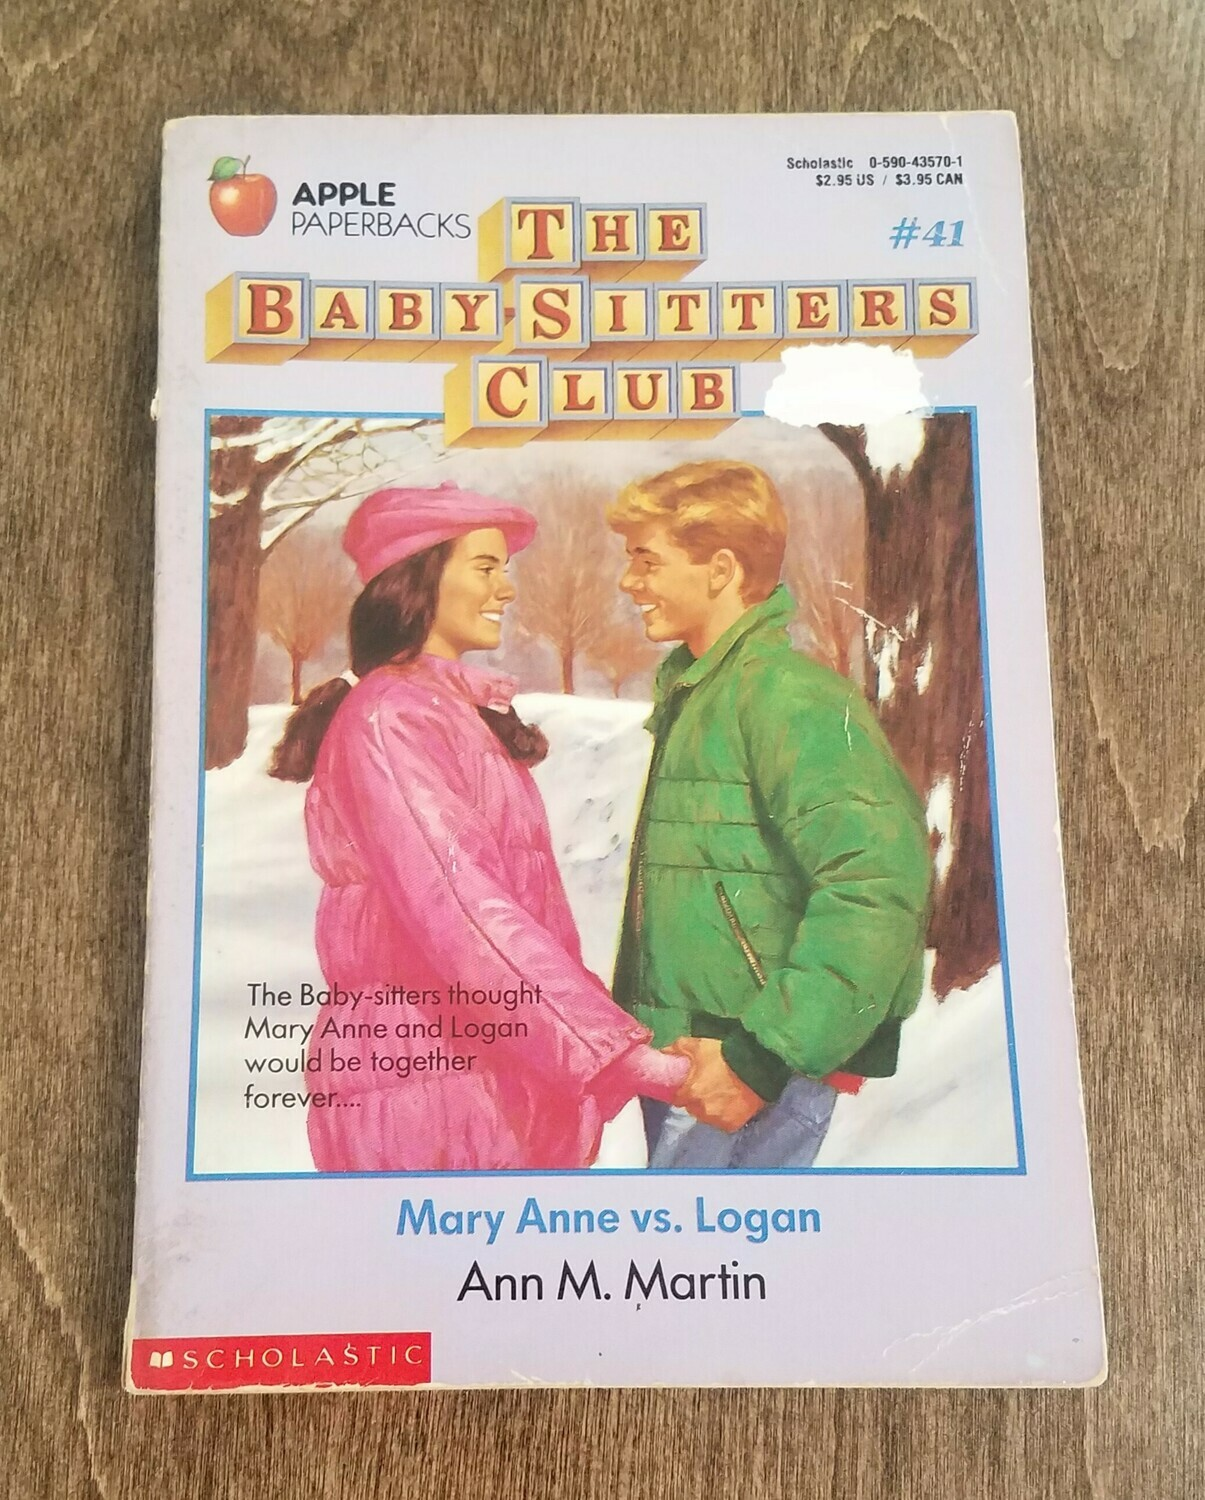 The Babysitters Club: Mary Anne Vs Logan by Ann M. Martin